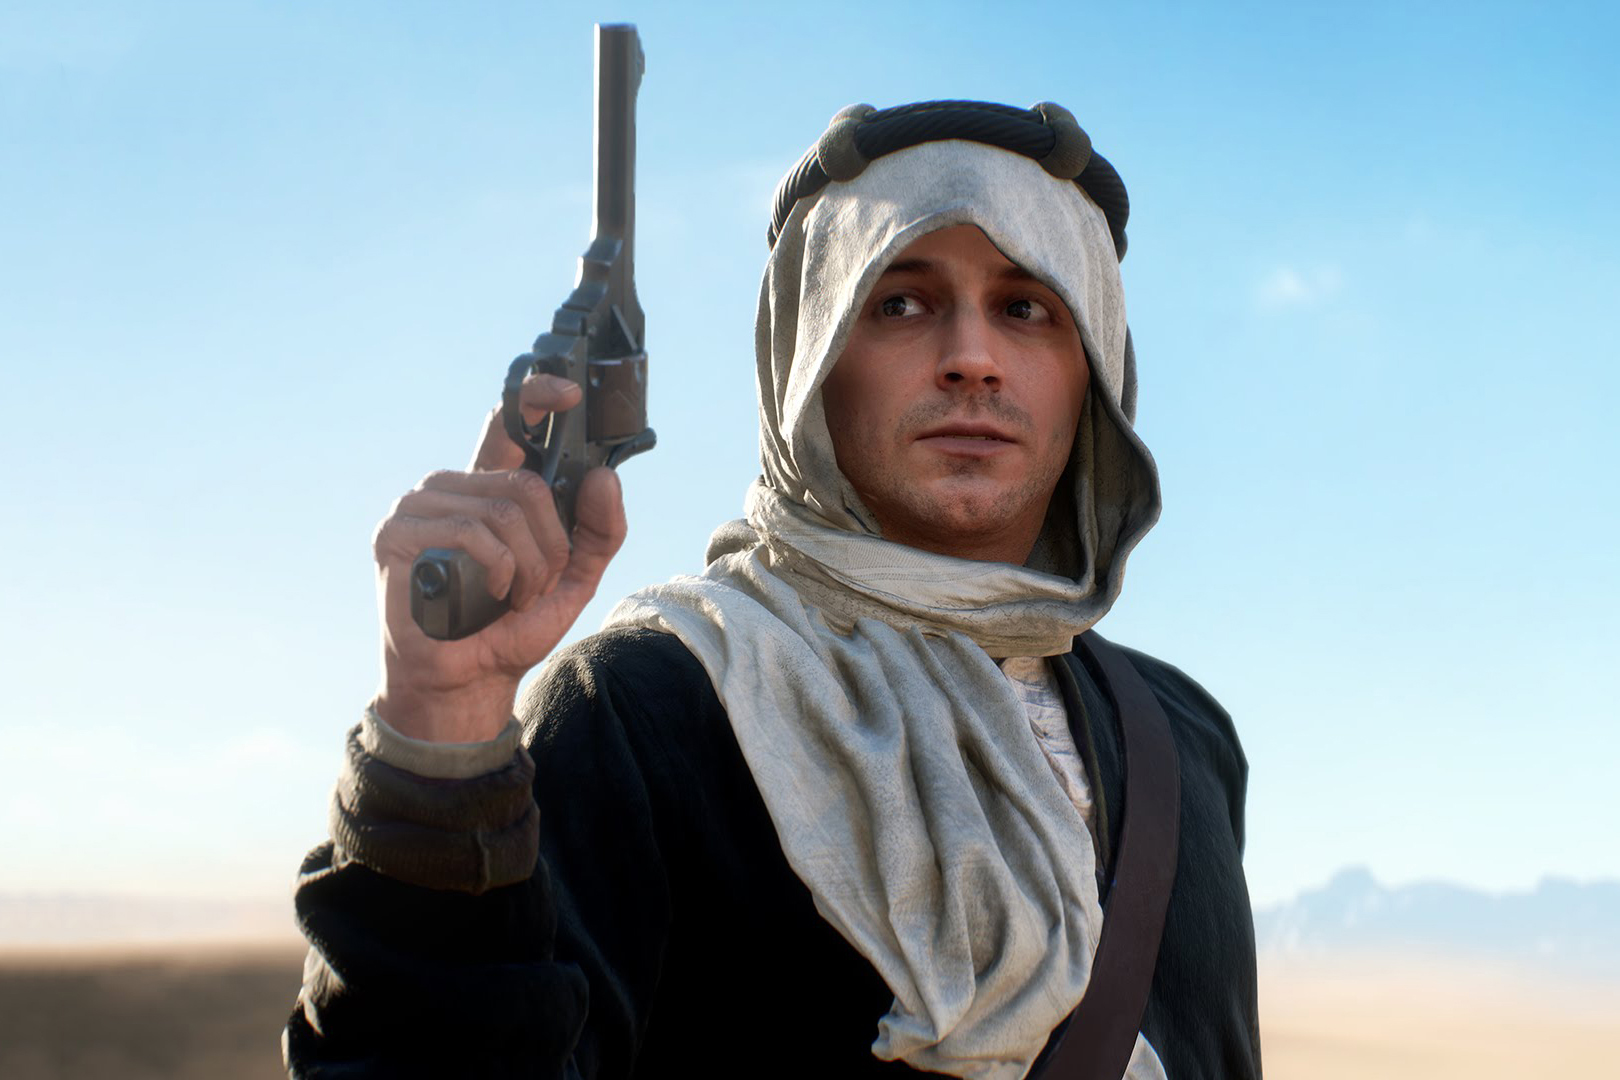 A First Look at the Single-Player Gameplay of 'Battlefield 1'